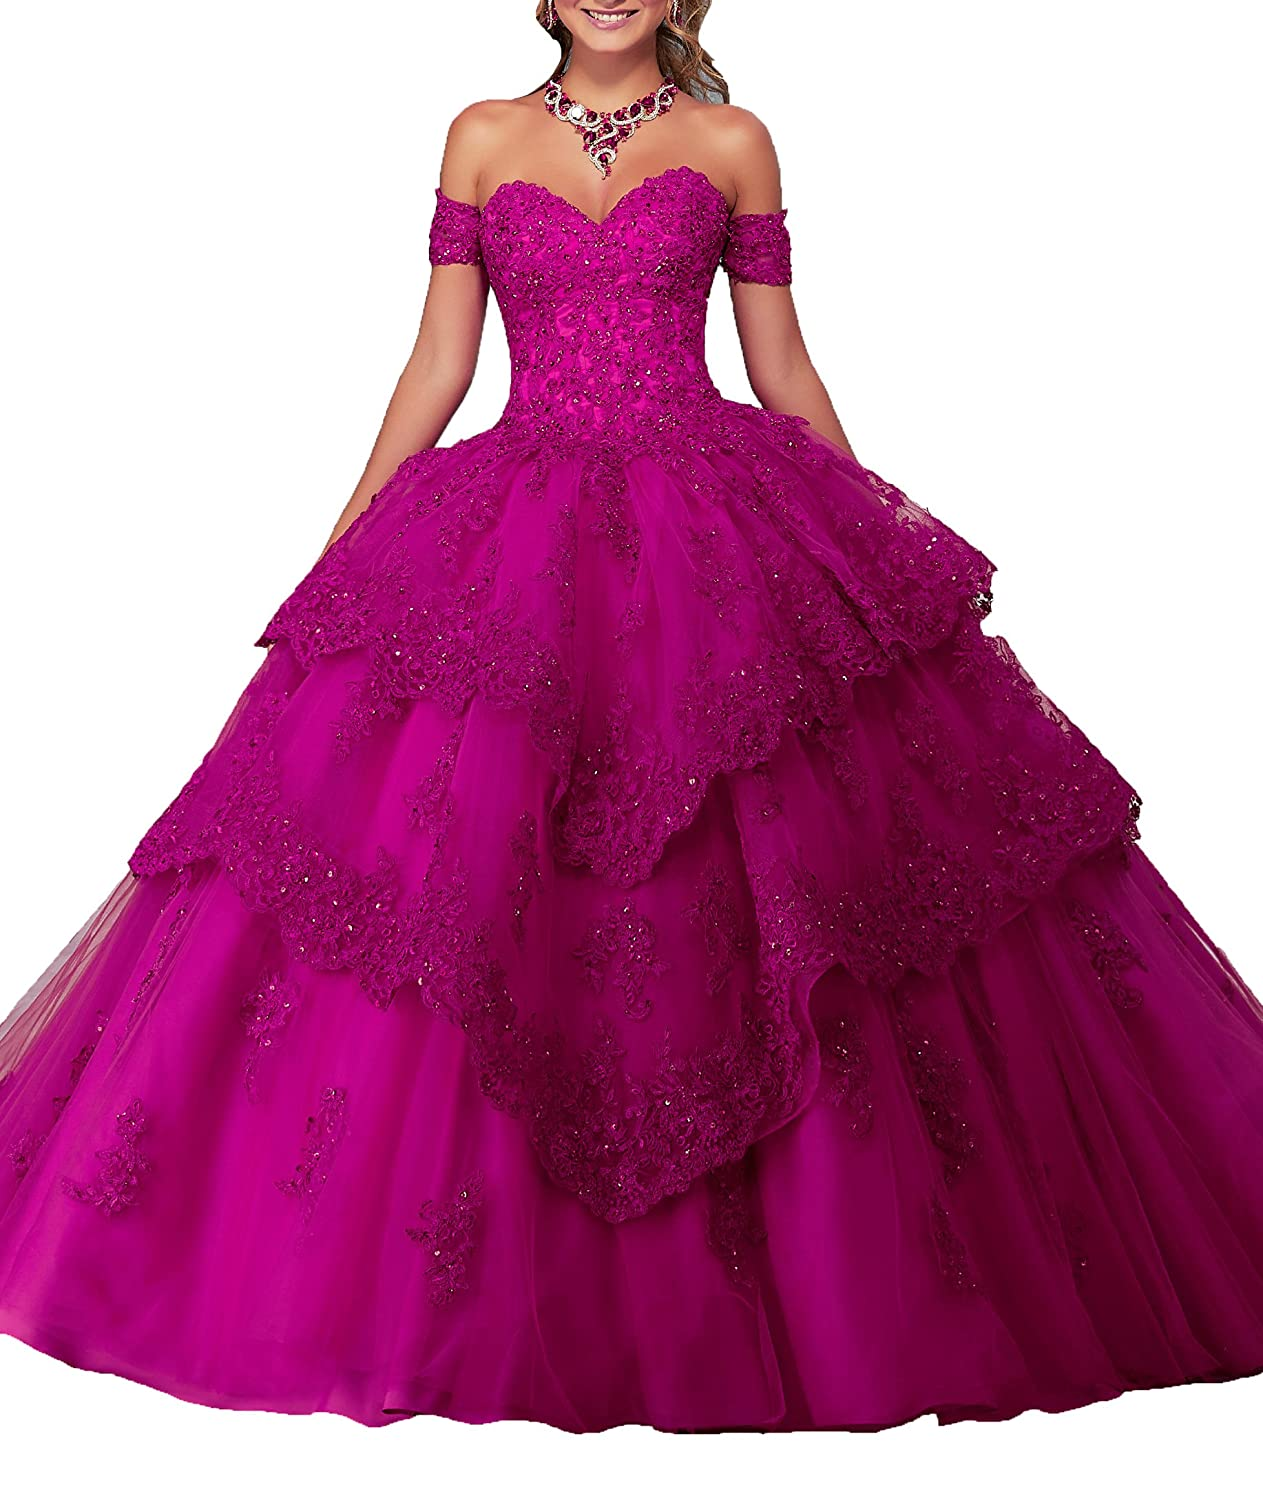 Yang B076TH7ZQR New Sweetheart 16 Quinceanera 16 Vestido Novia de ...